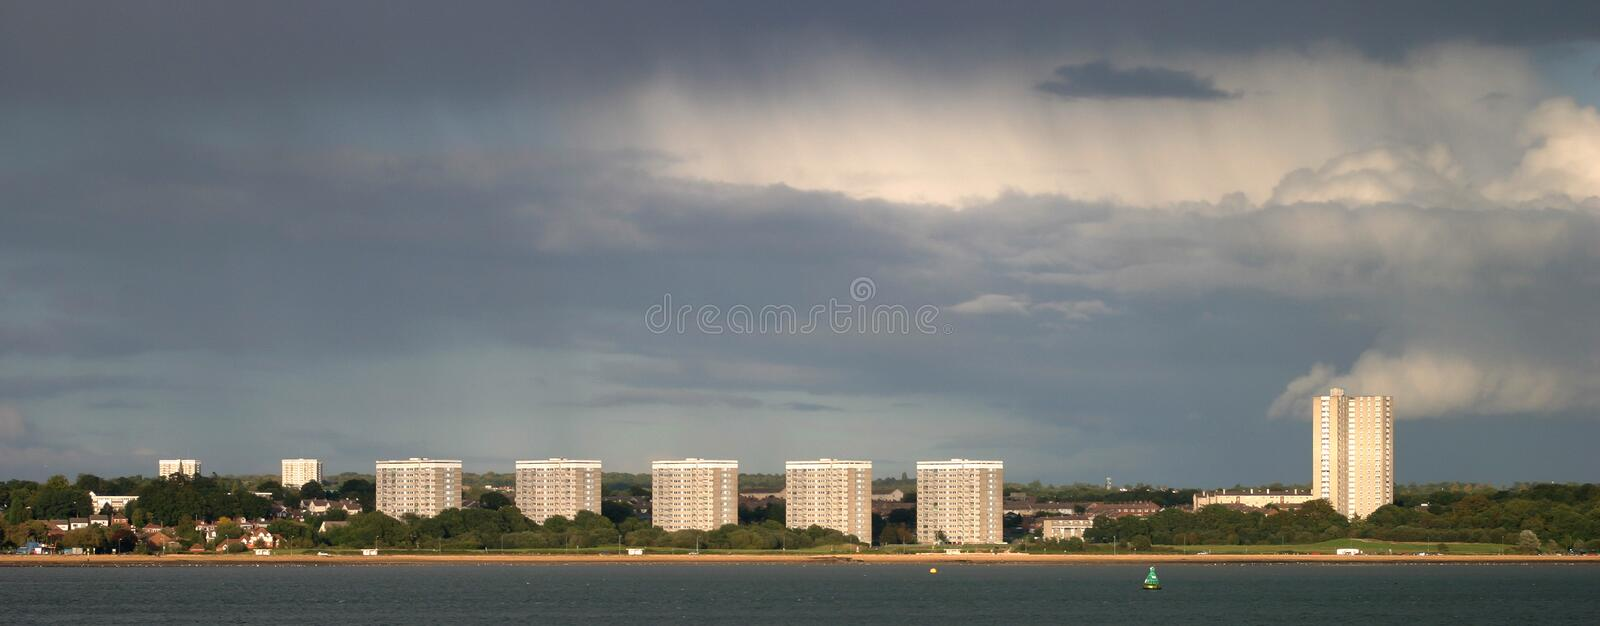 Tower Blocks on a Stormy Day stock image